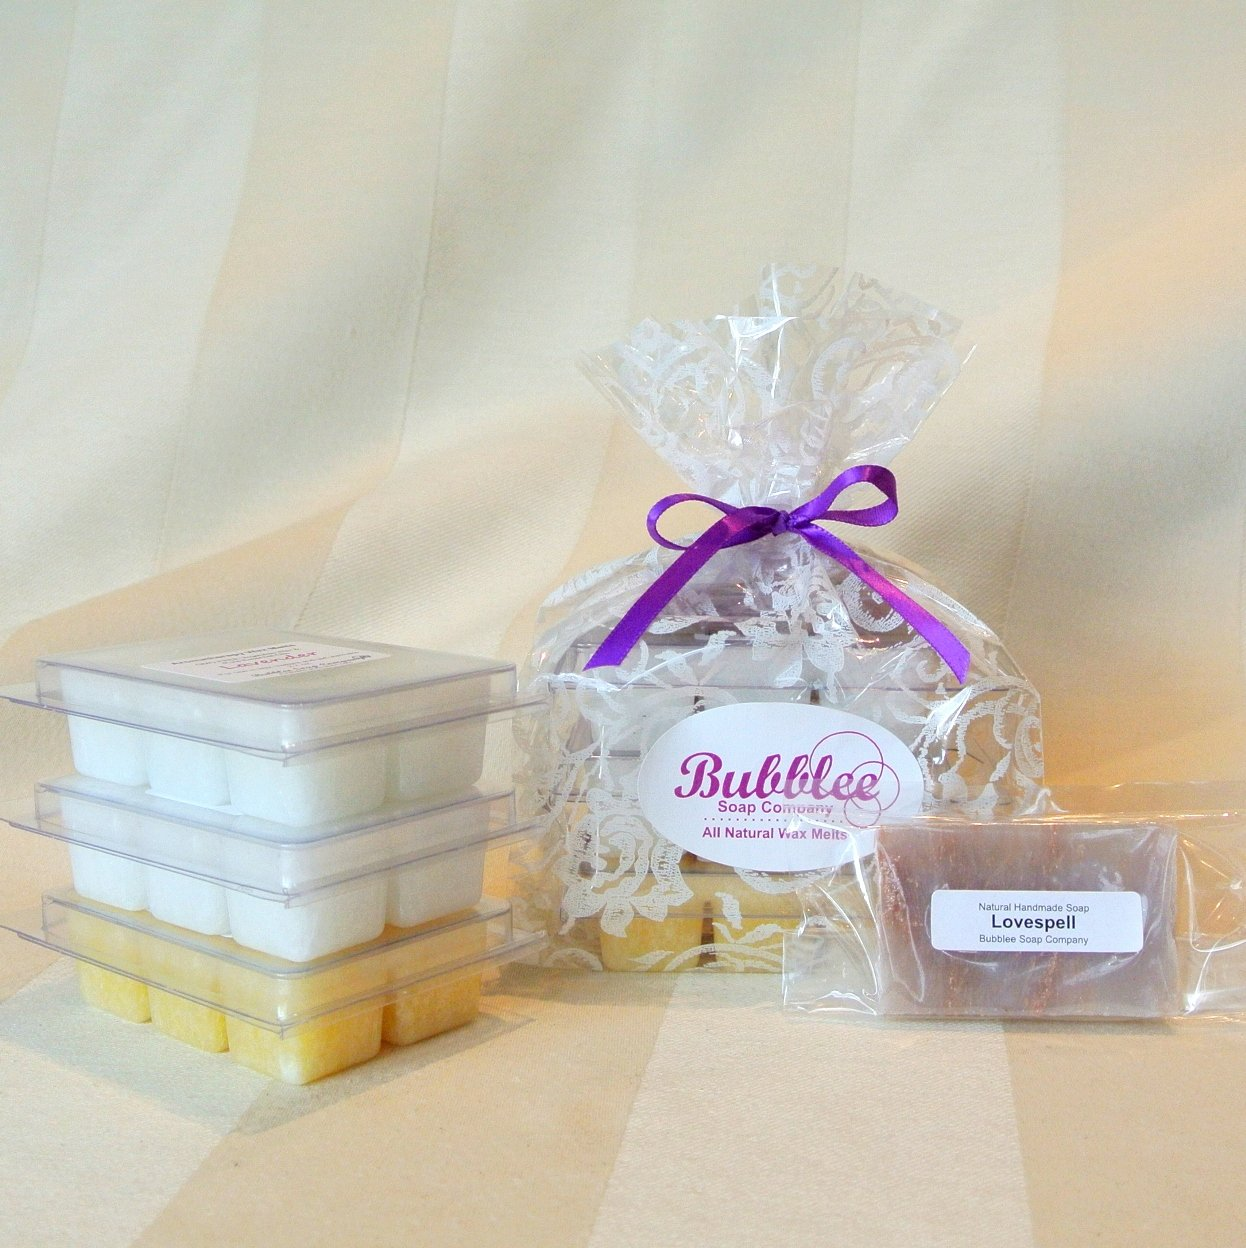 Non-GMO / Natural Aromatherapy Wax Melts Gift Set (3 Packs) - Lavender, Patchouli Lavender, Evergreen Lavender - Made with All Natural Non-GMO Vegetable Wax & Pure Essential Oils Bubblee Soap Co. LavenderWaxMeltSet